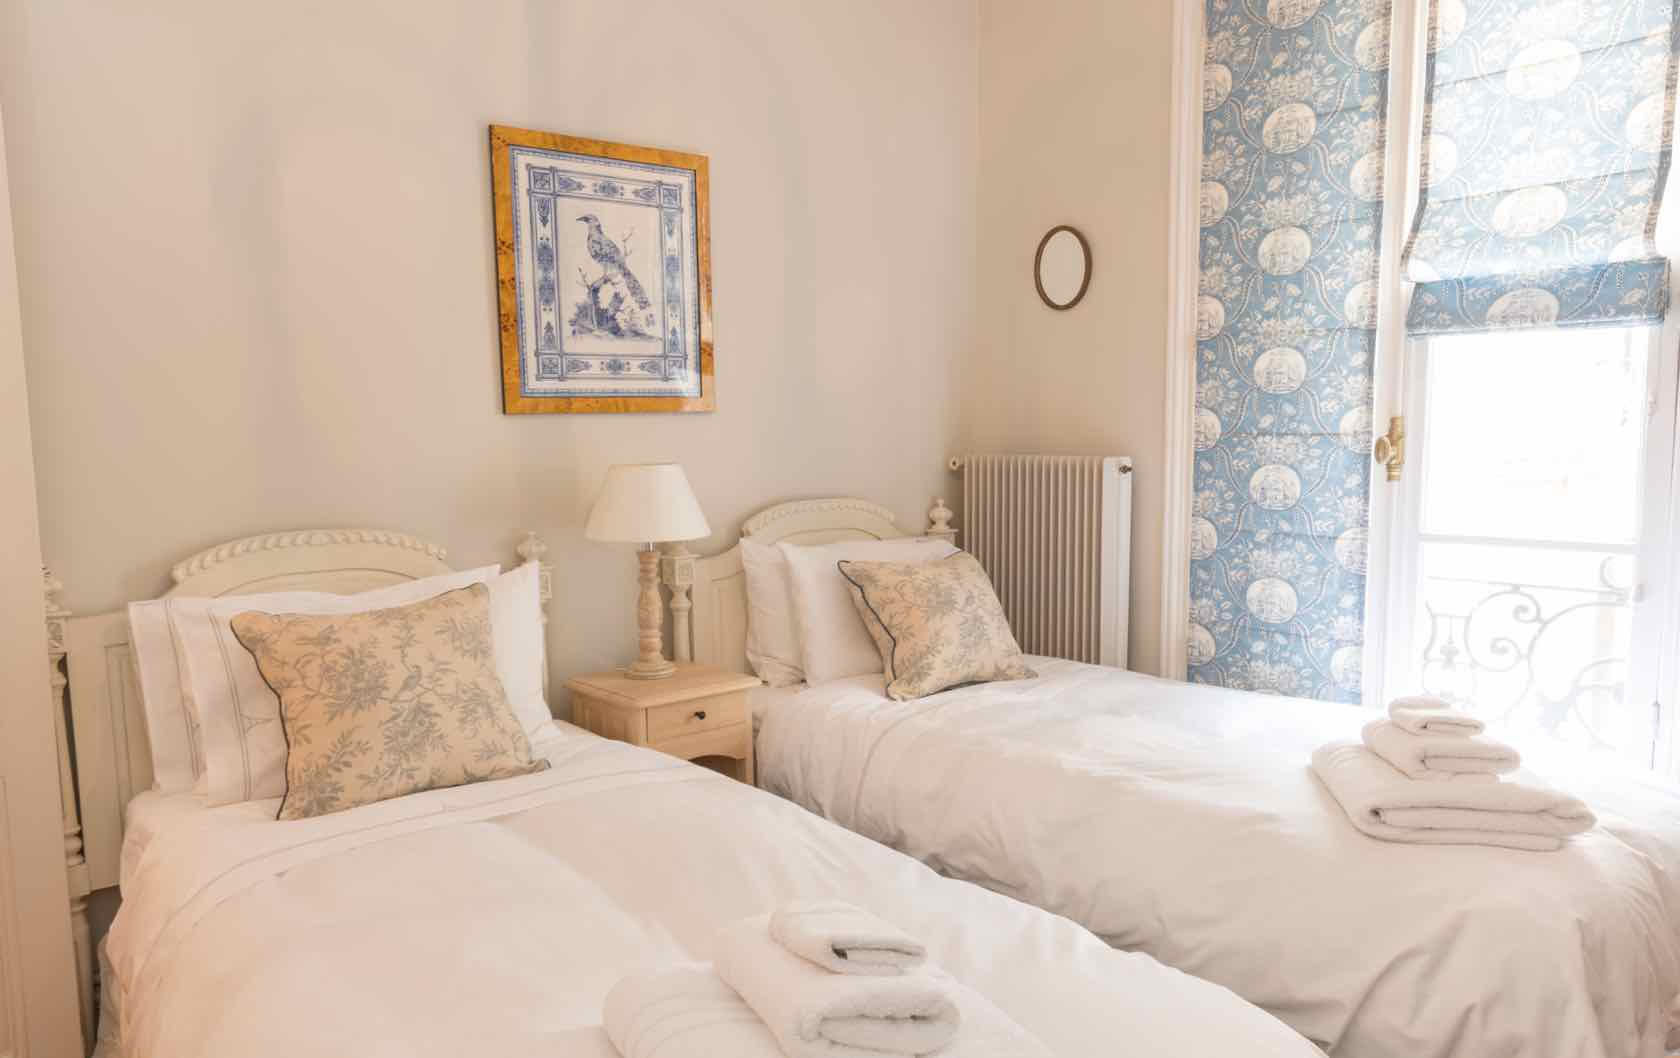 Live Like a Local in the Gamay, a Long-Term Rental in Paris by Paris Perfect spare bedroom